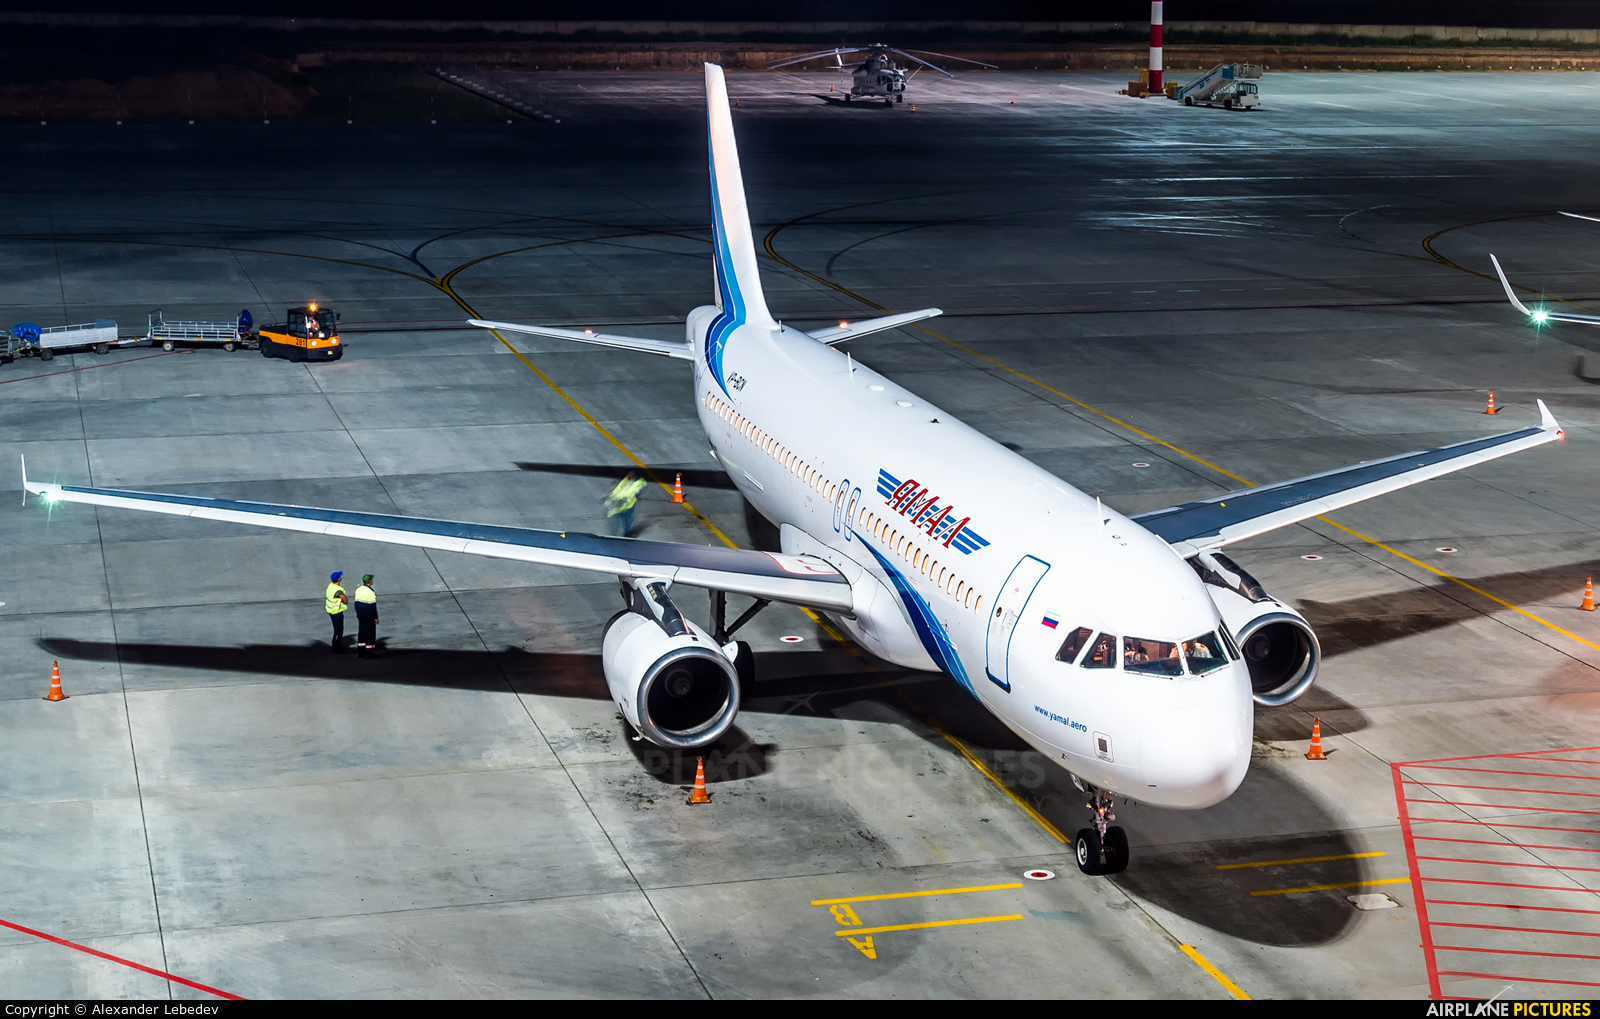 Yamal Airlines VP-BCN aircraft at Undisclosed Location